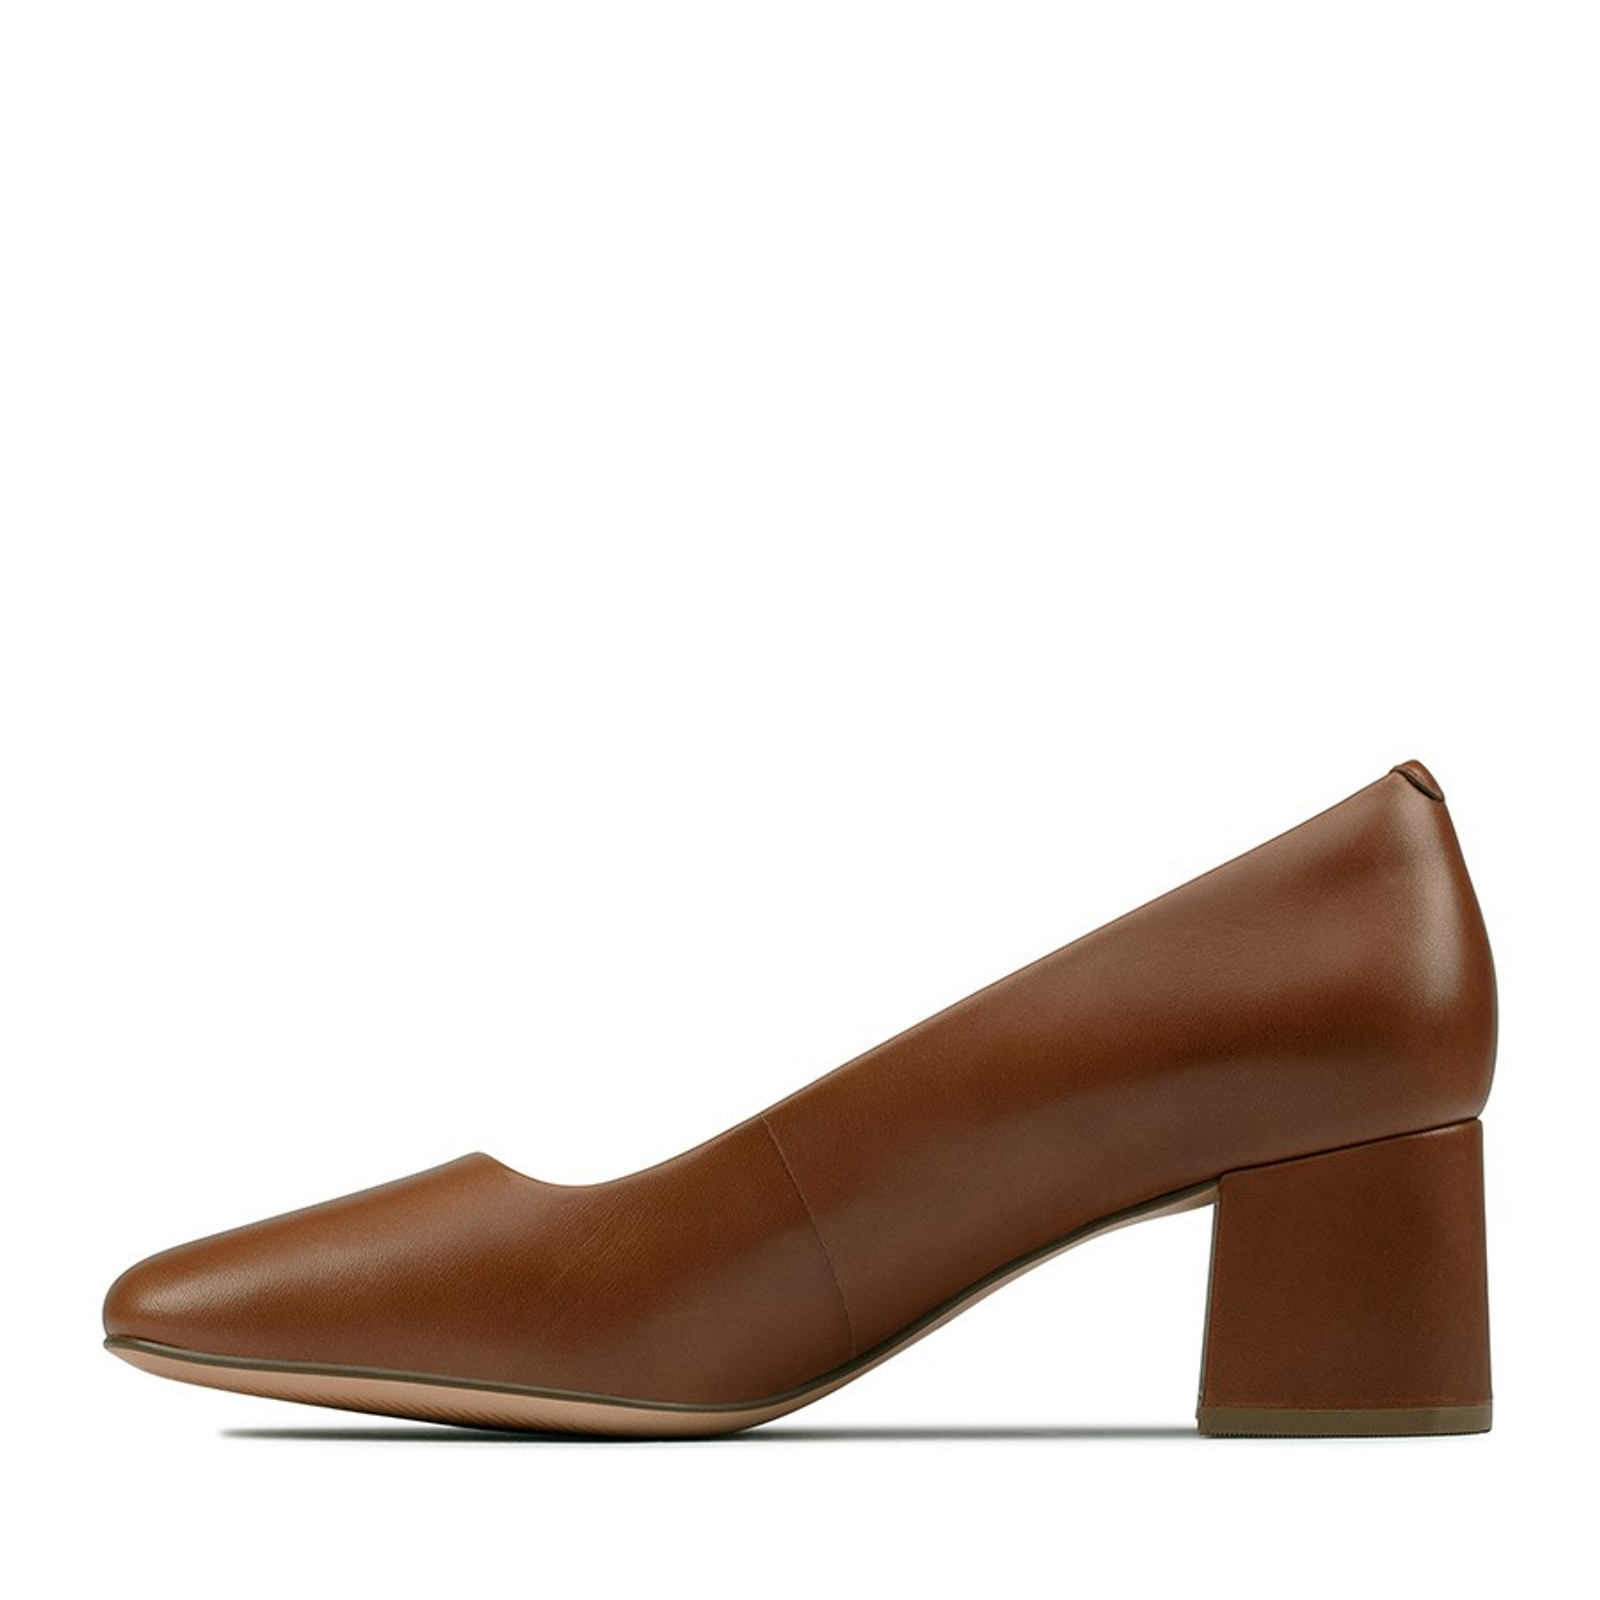 Clarks Womens SHEER ROSE Tan Leather